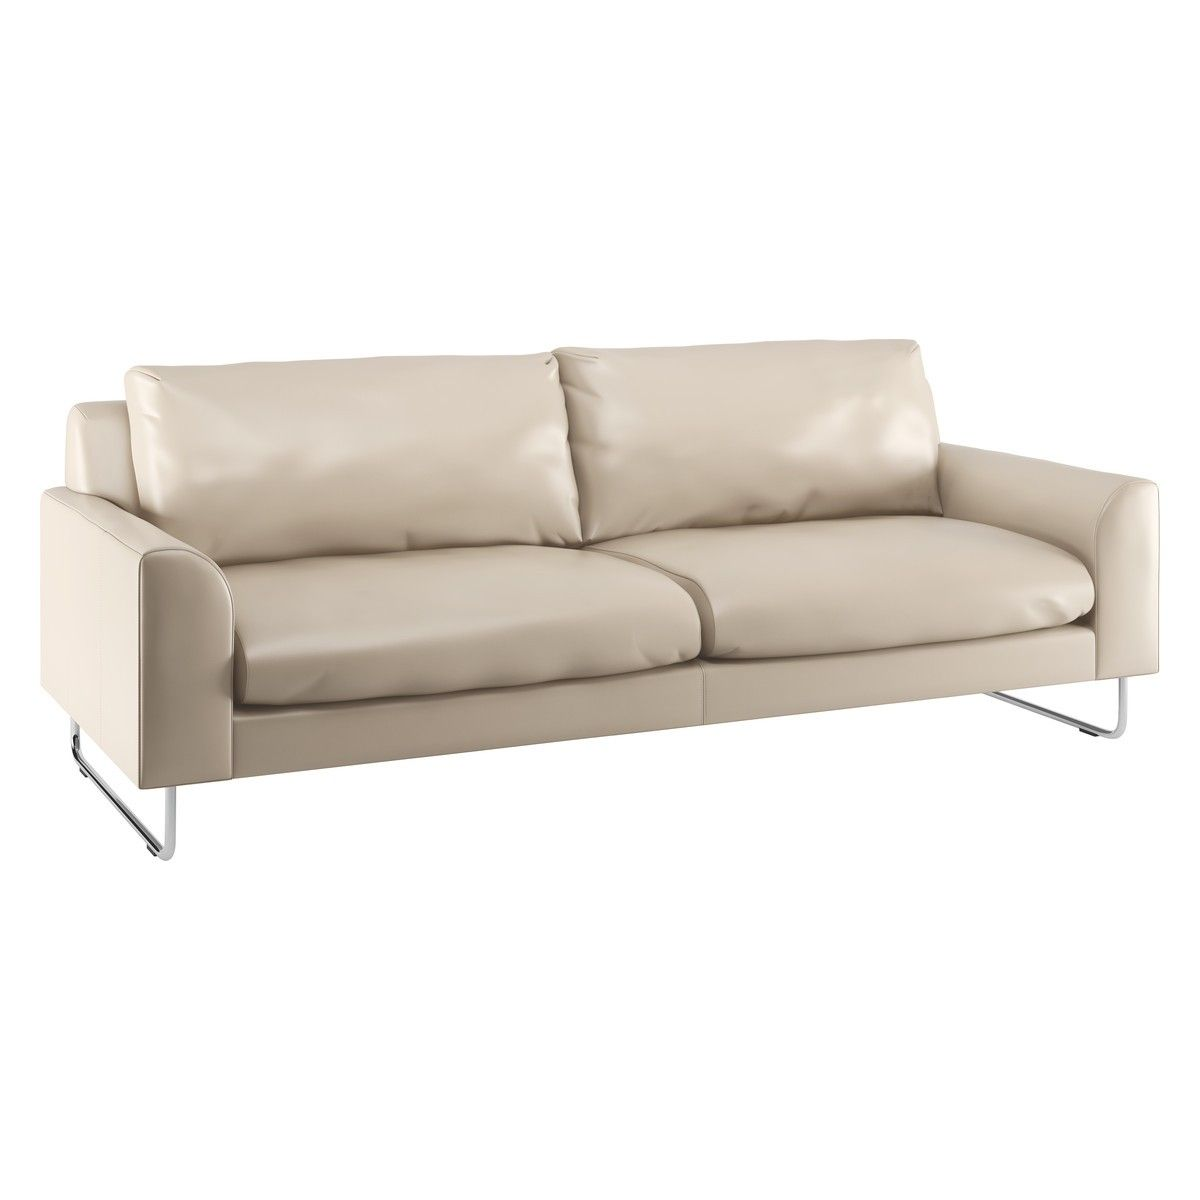 couch lounge sofa cream for loveseat chaise walls grey leather